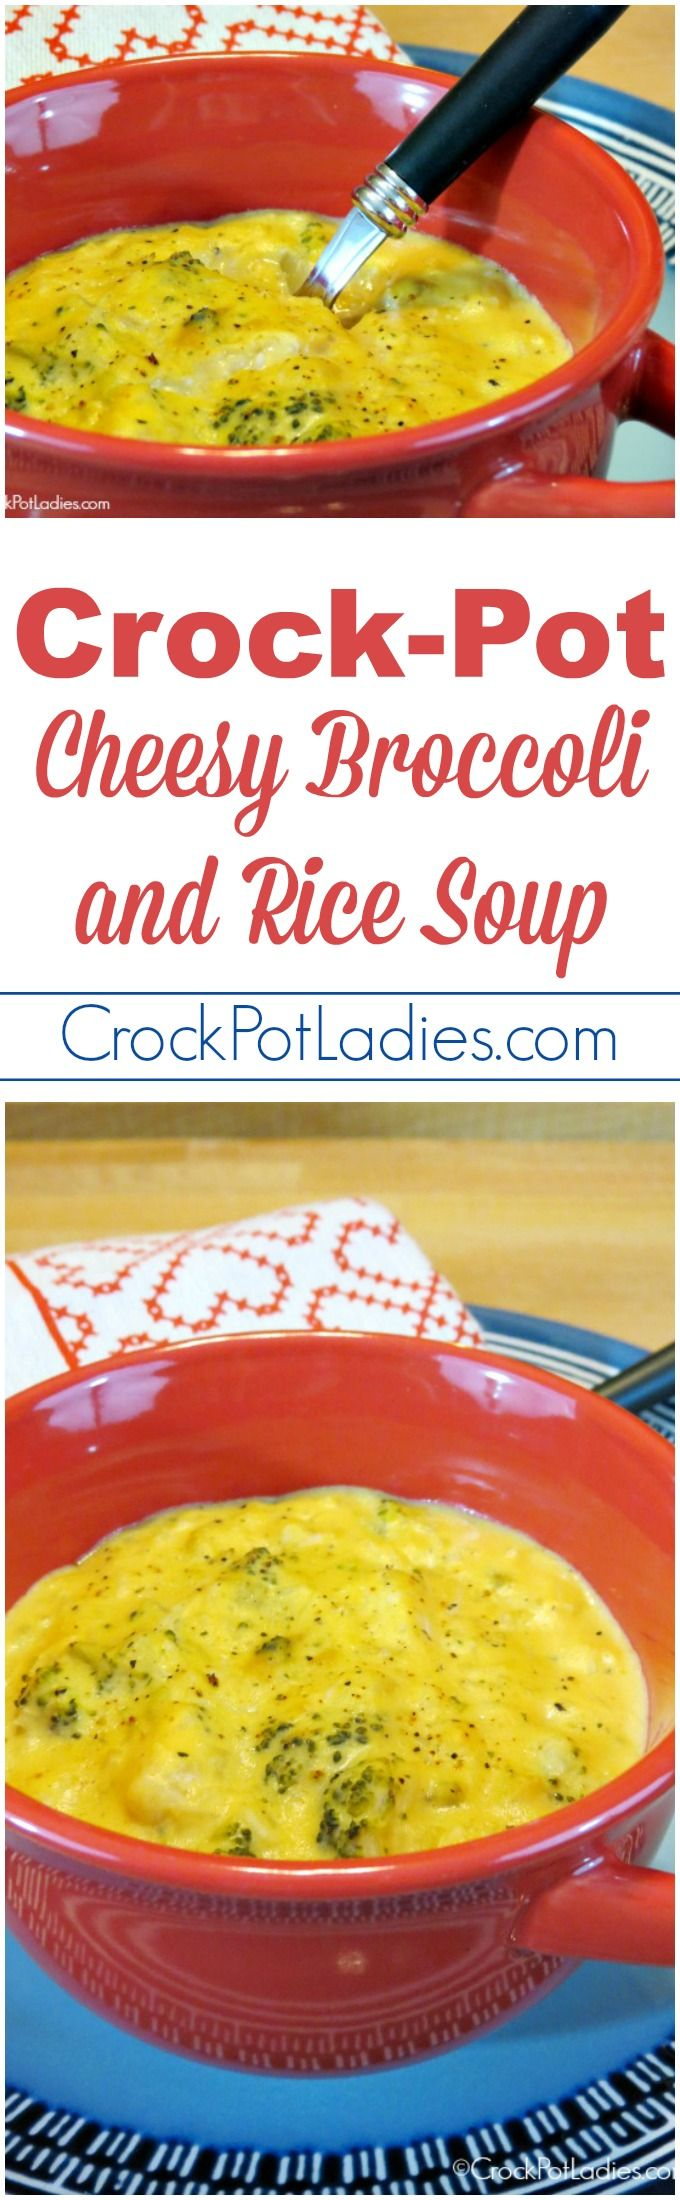 Crock-Pot Cheesy Broccoli and Rice Soup - A great meal for a cold winter day this recipe for Slow Cooker Cheesy Broccoli and Rice Soup is an easy, filling soup that your family will love! [Vegetarian & High Fiber] #CrockPot #SlowCooker #Recipe #CrockPotLadies